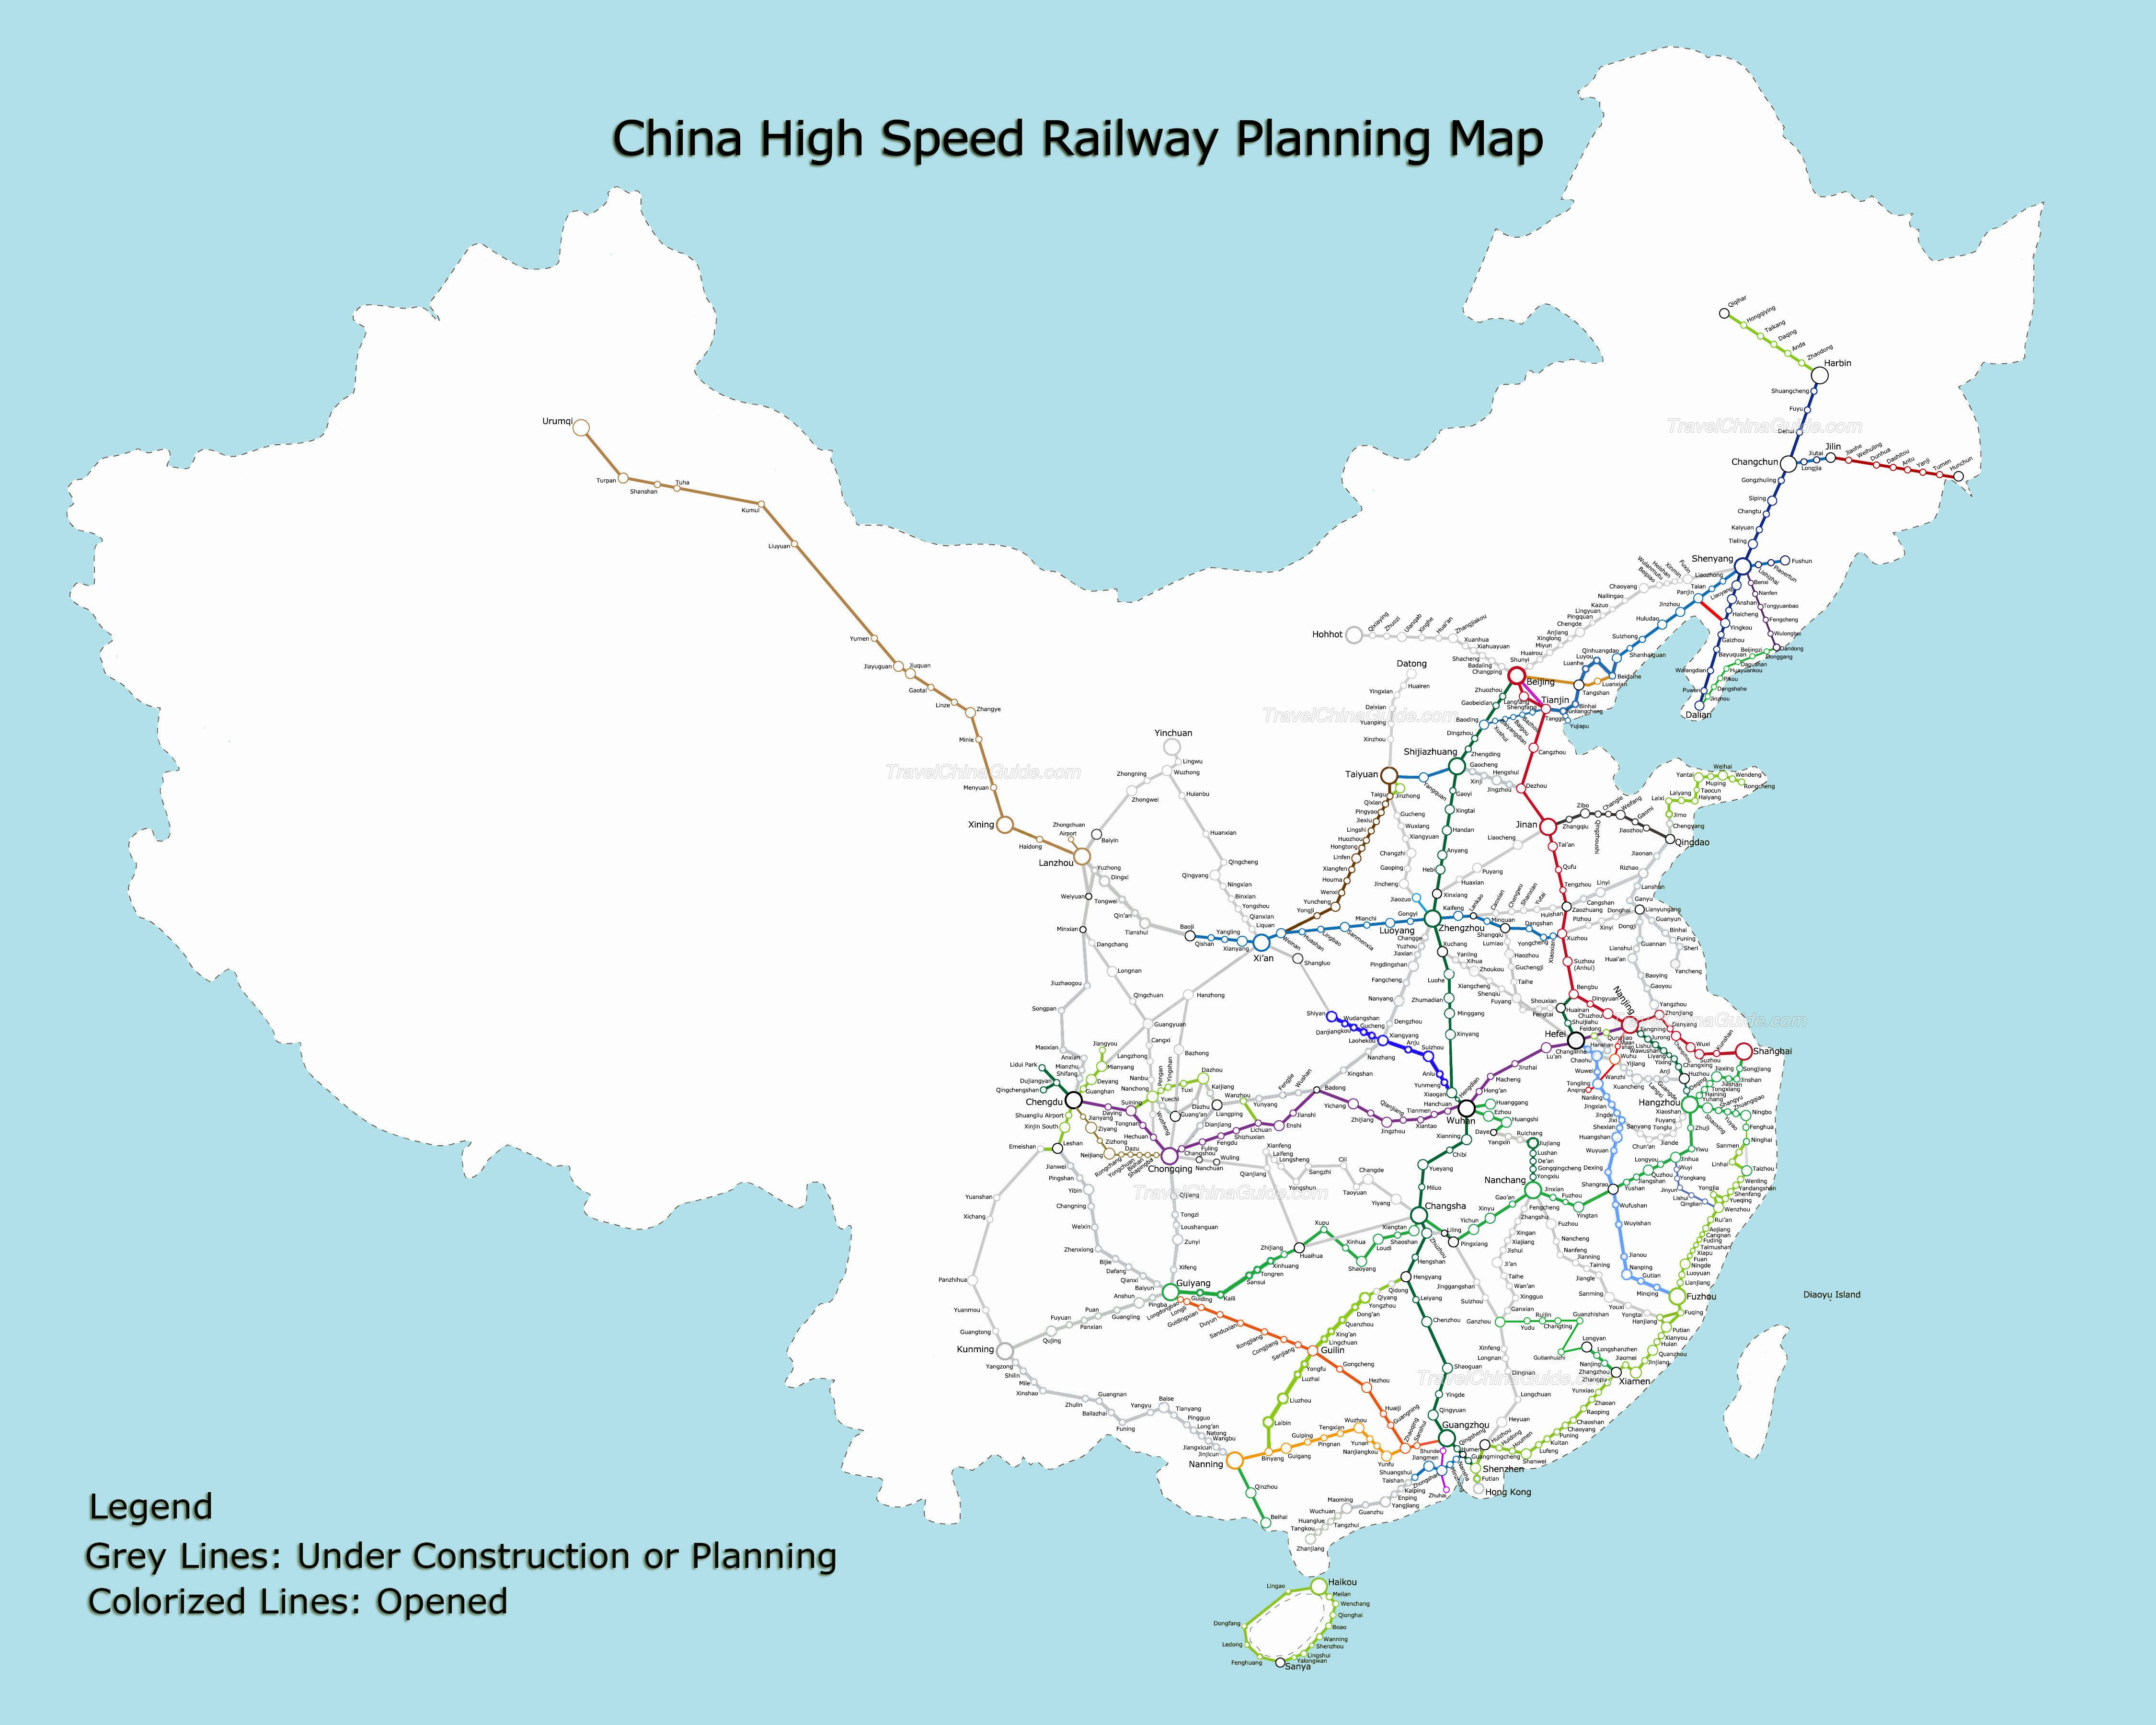 China high speed railway planning map | High speed trains in China ...